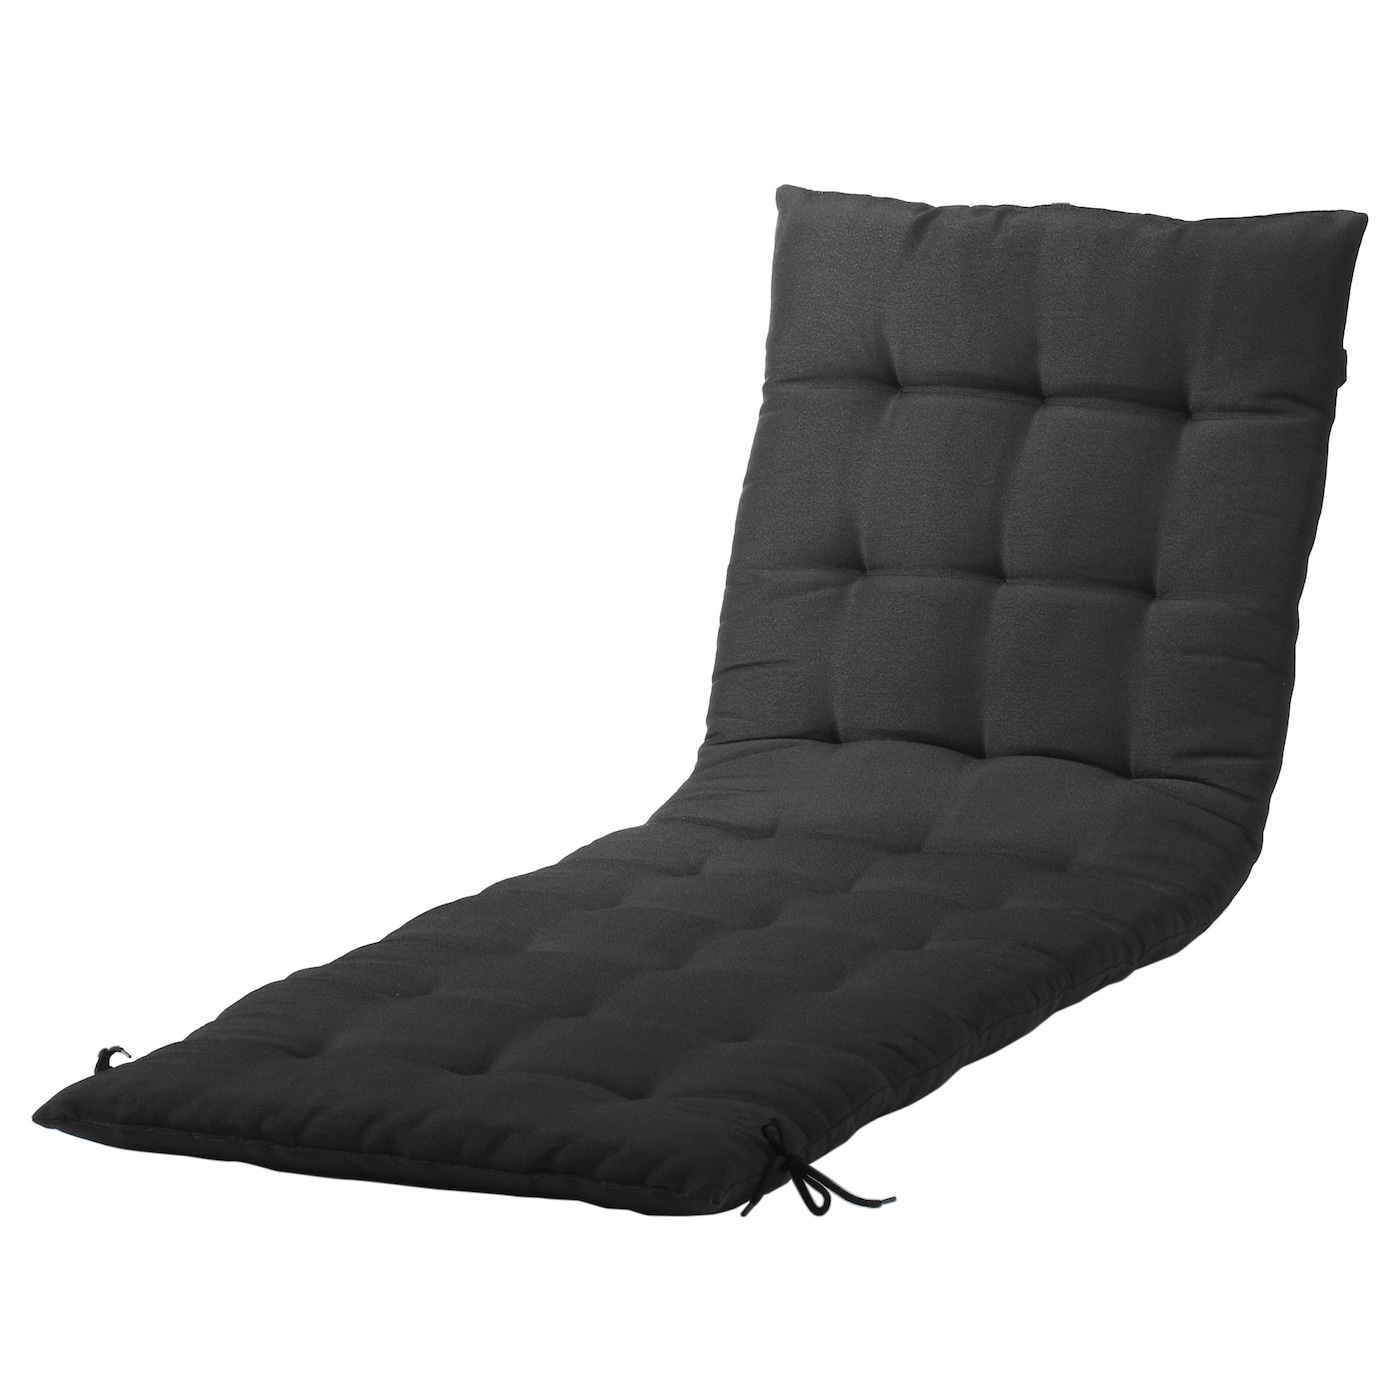 Pplar sun lounger brown stained ikea - Coussin chaise ikea ...